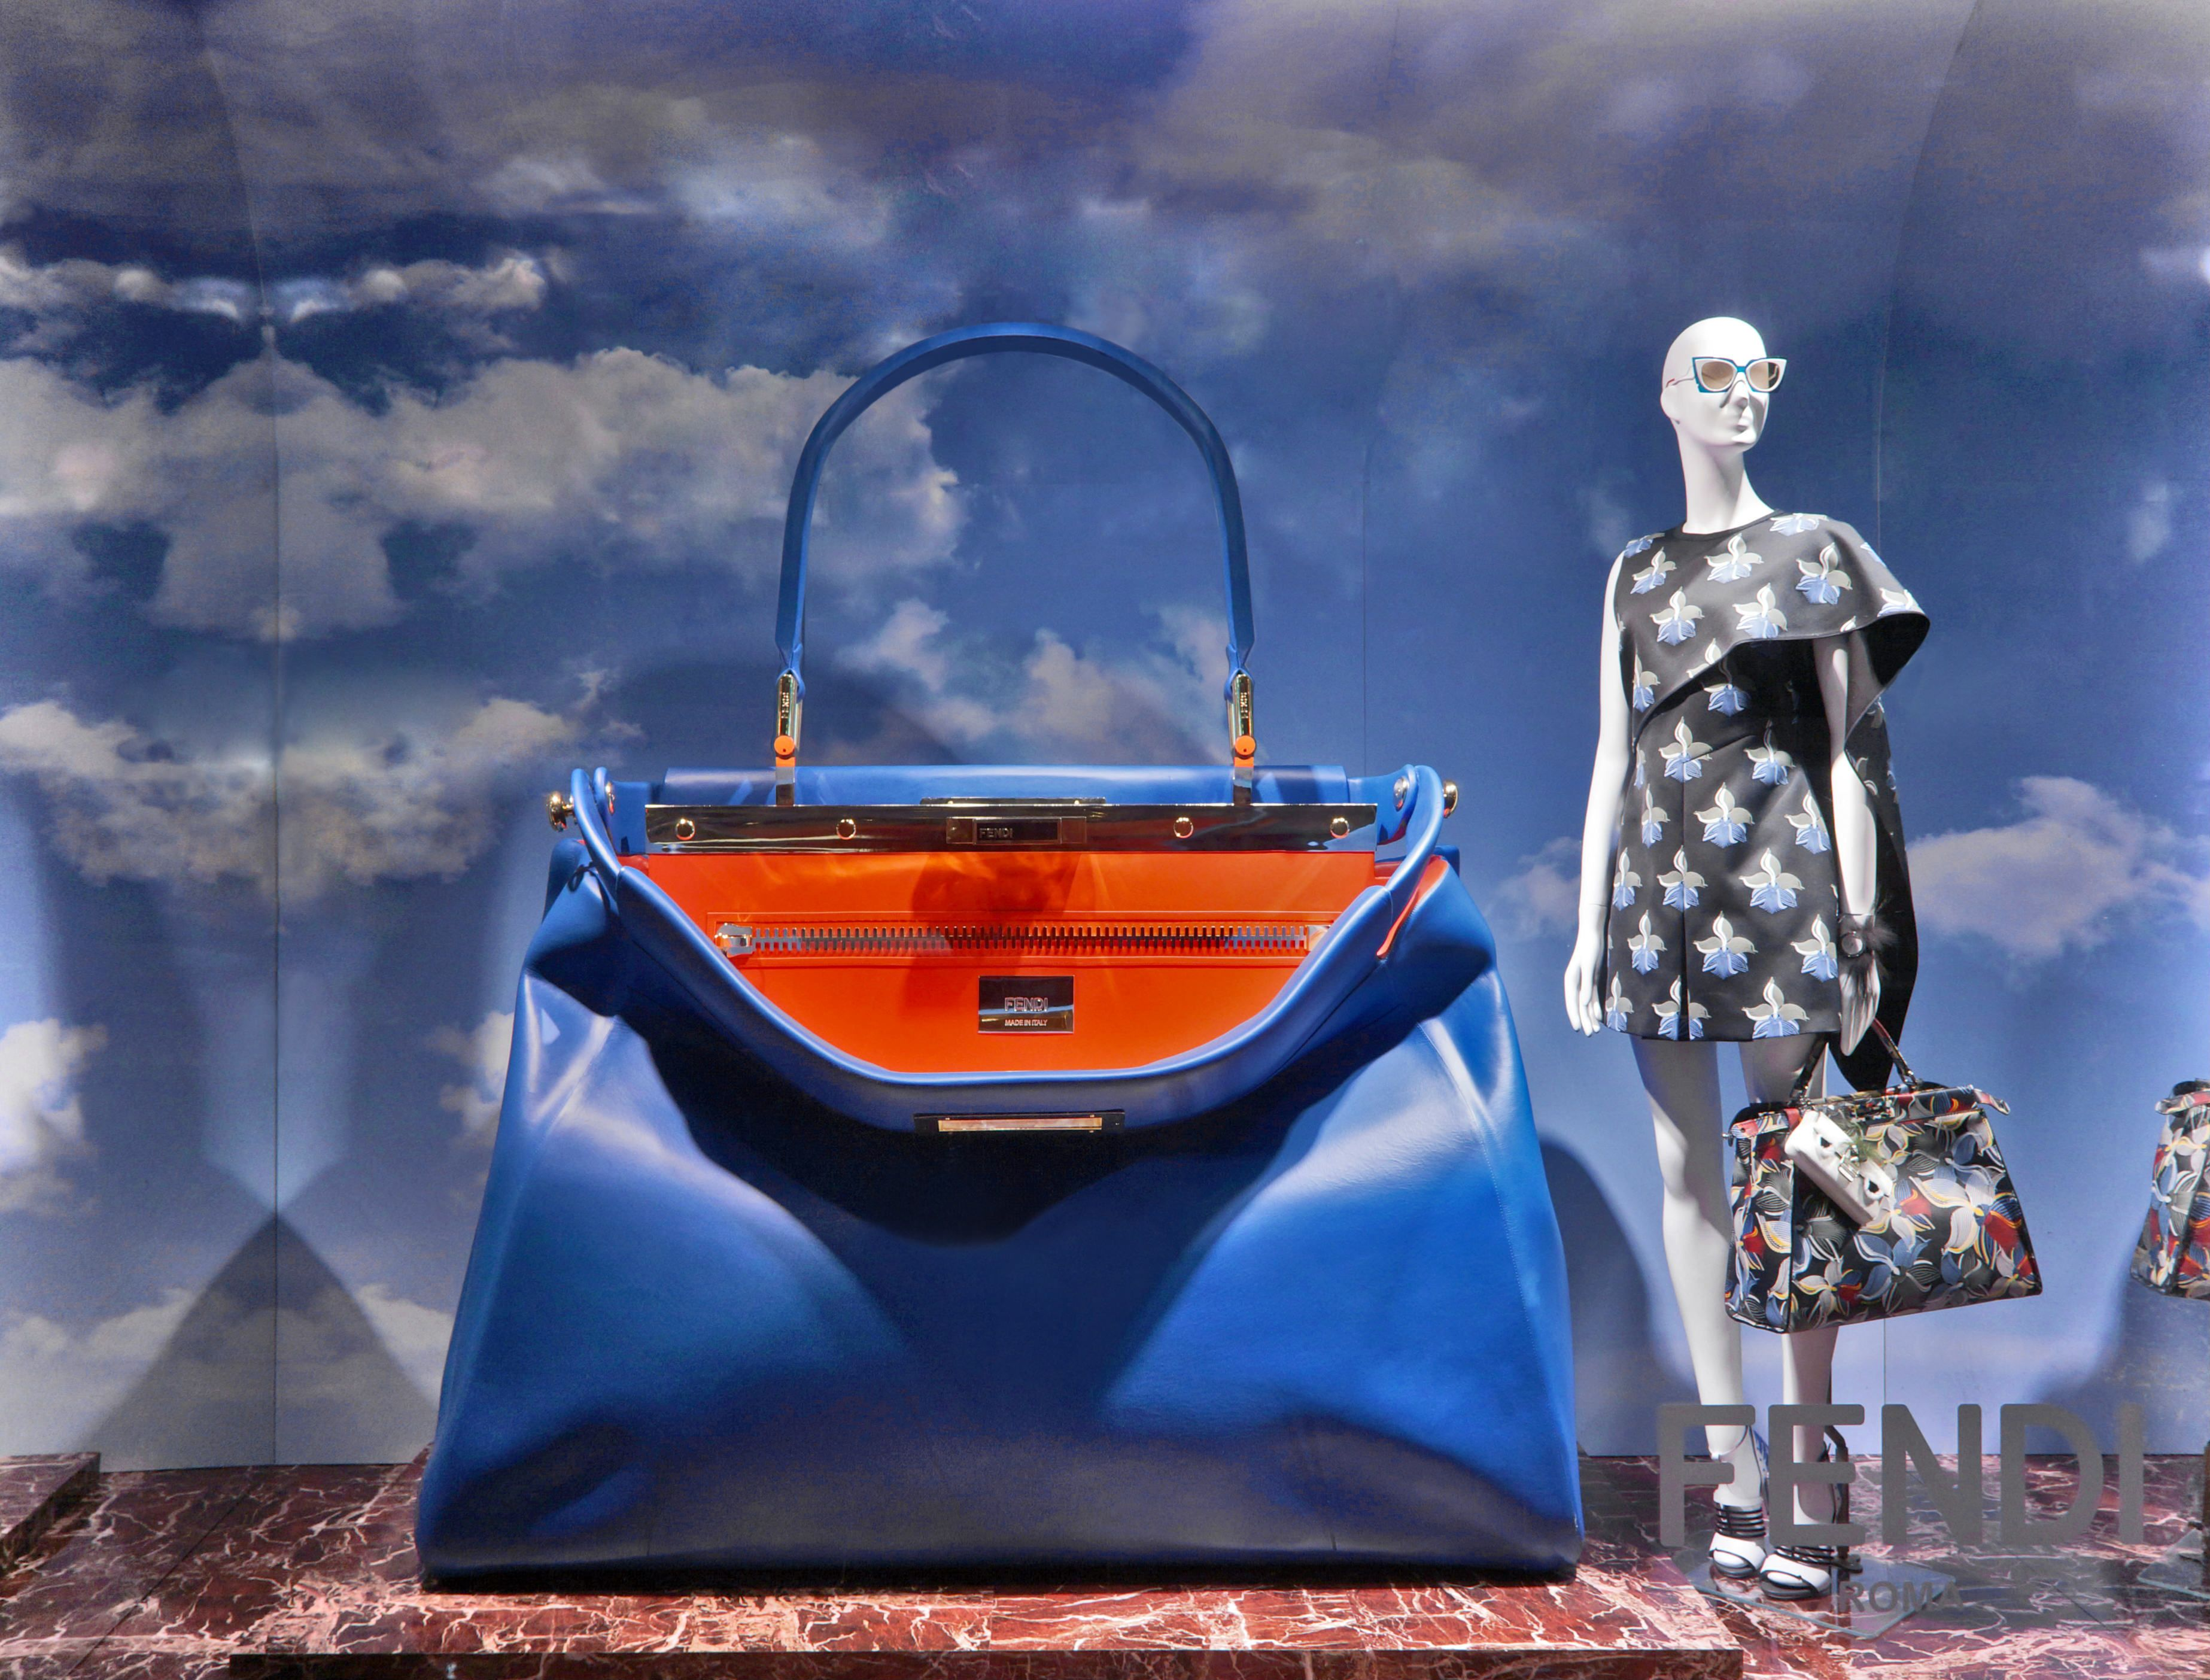 The new Fendi window theme at Saks Fifth Avenue in New York